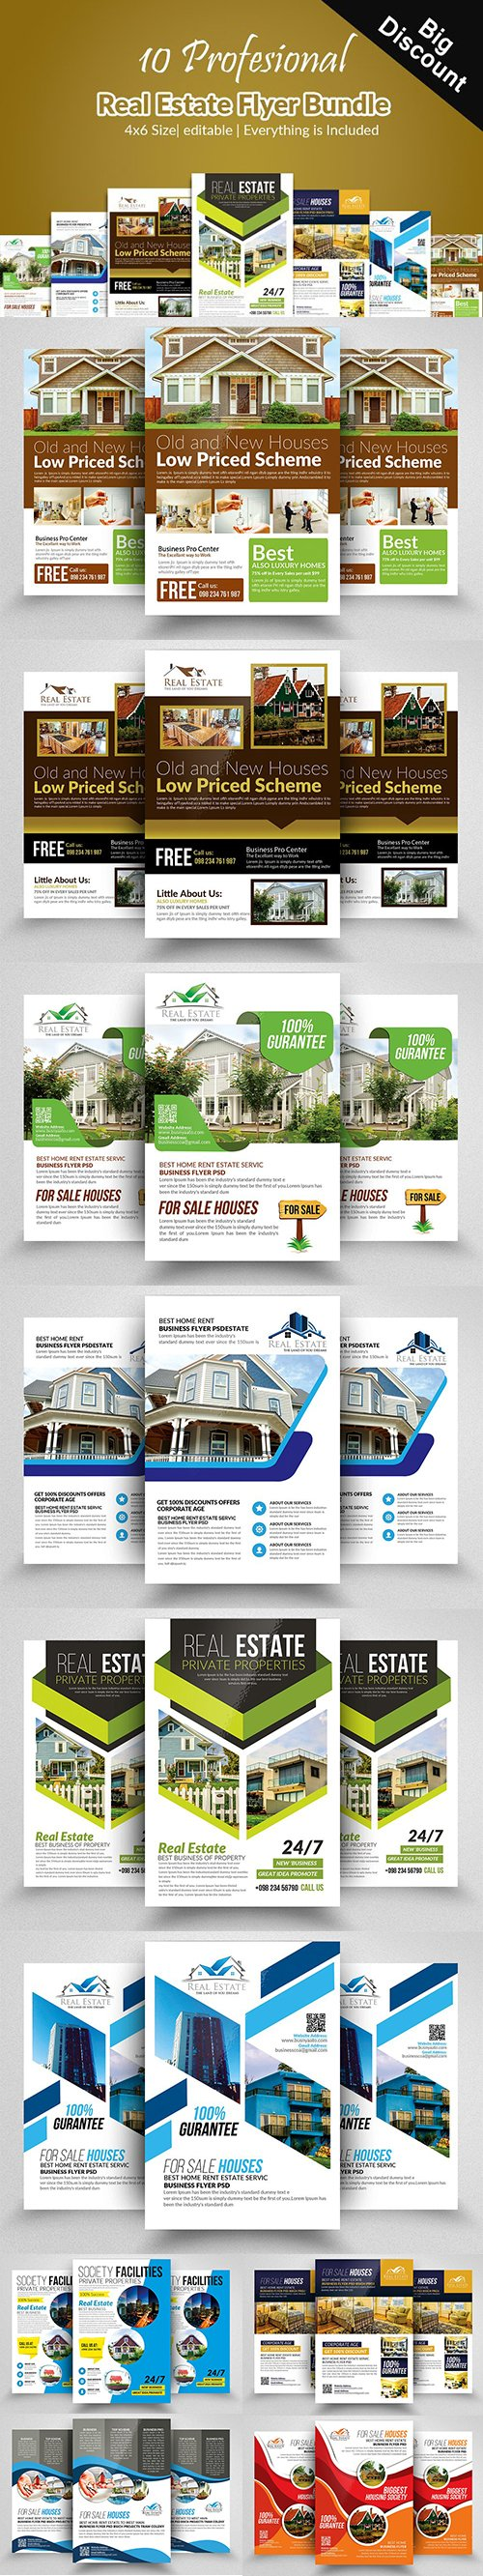 CreativeMarket - 10 Real Estate Flyers Bundle 2351629